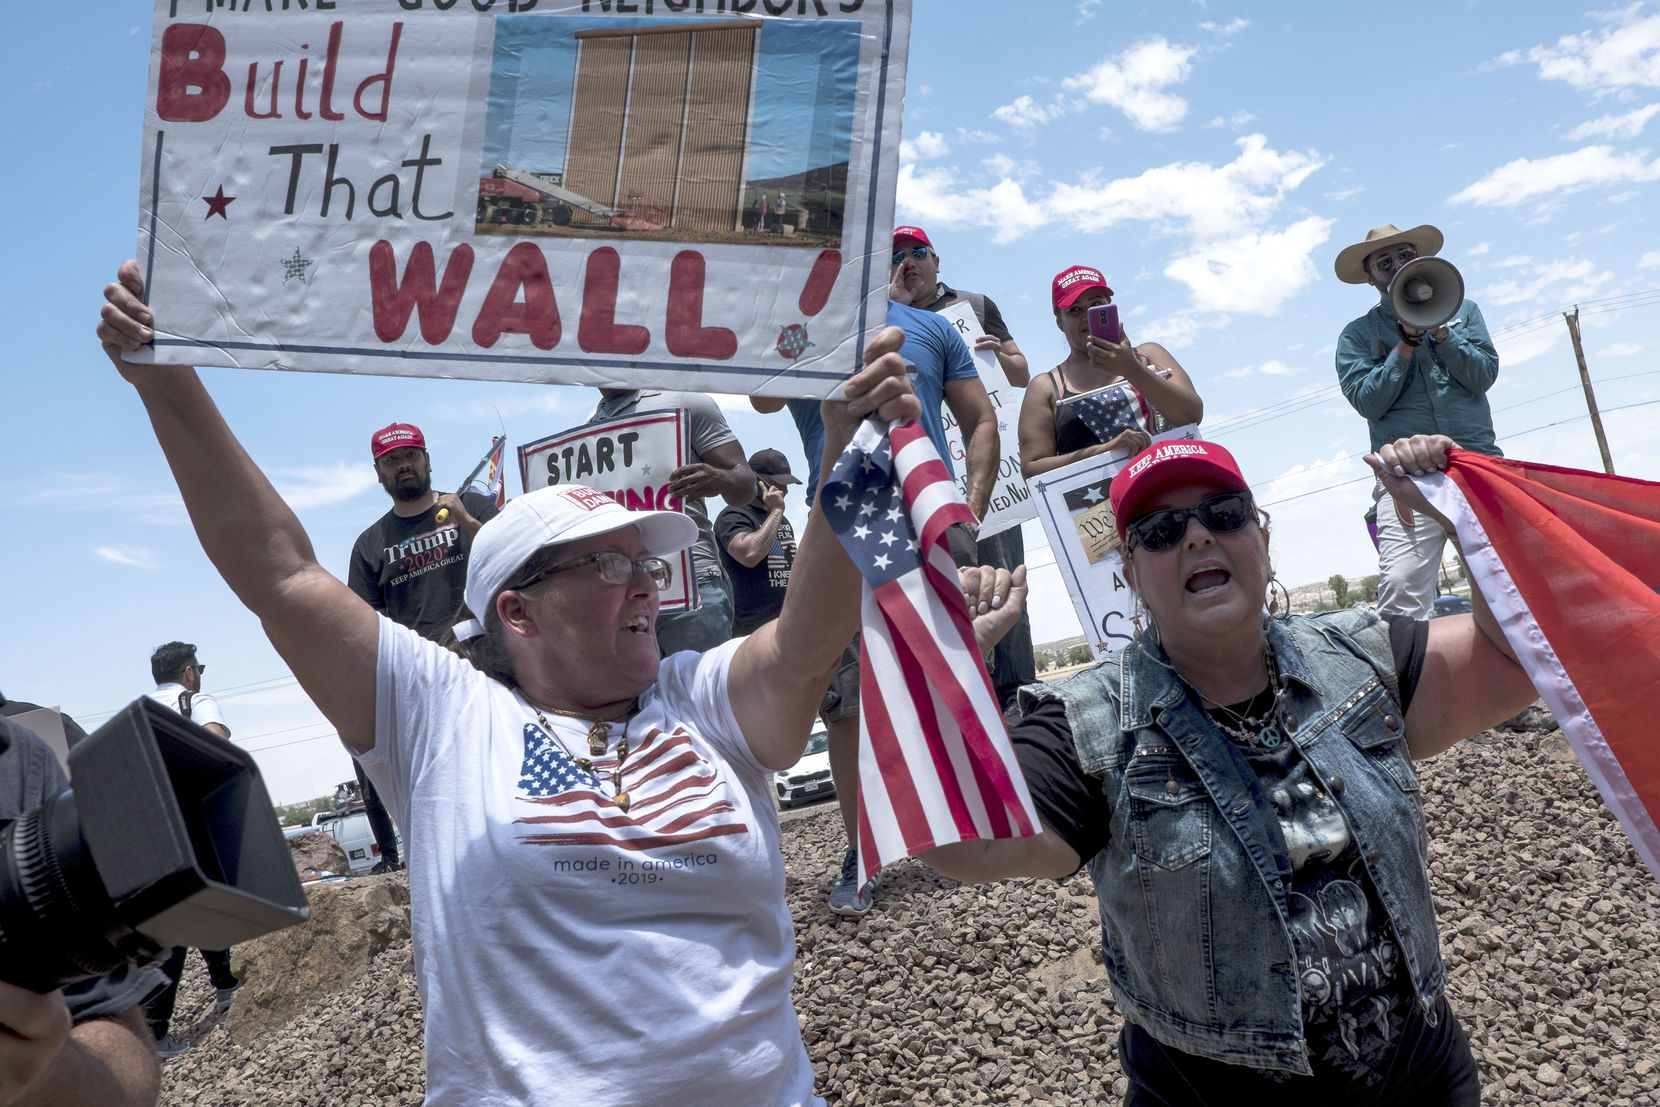 Trump supporters demonstrate outside a Customs and Border Protection station in Clint on Monday during a visit by the Congressional Hispanic Caucus.